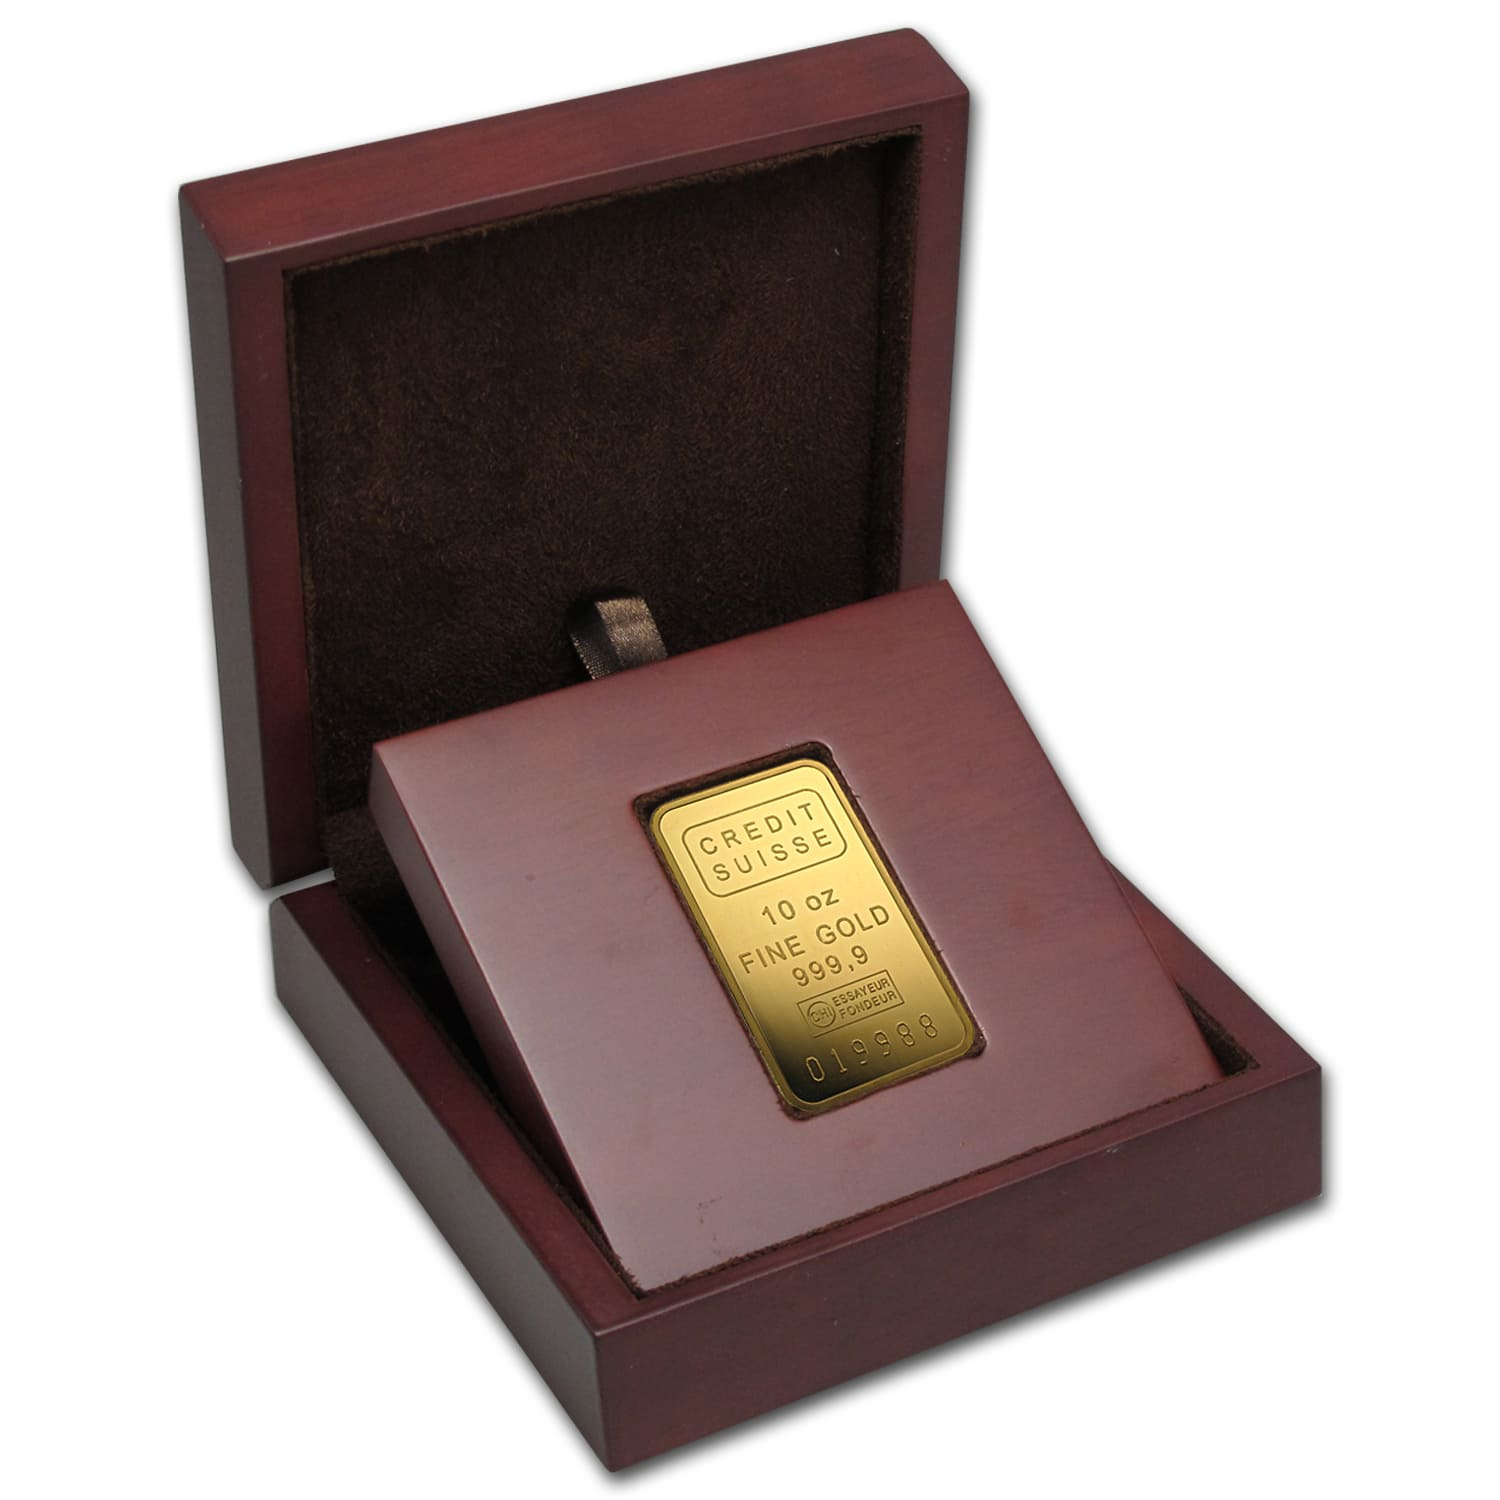 10 oz Gold Bars - Credit Suisse (With Assay)